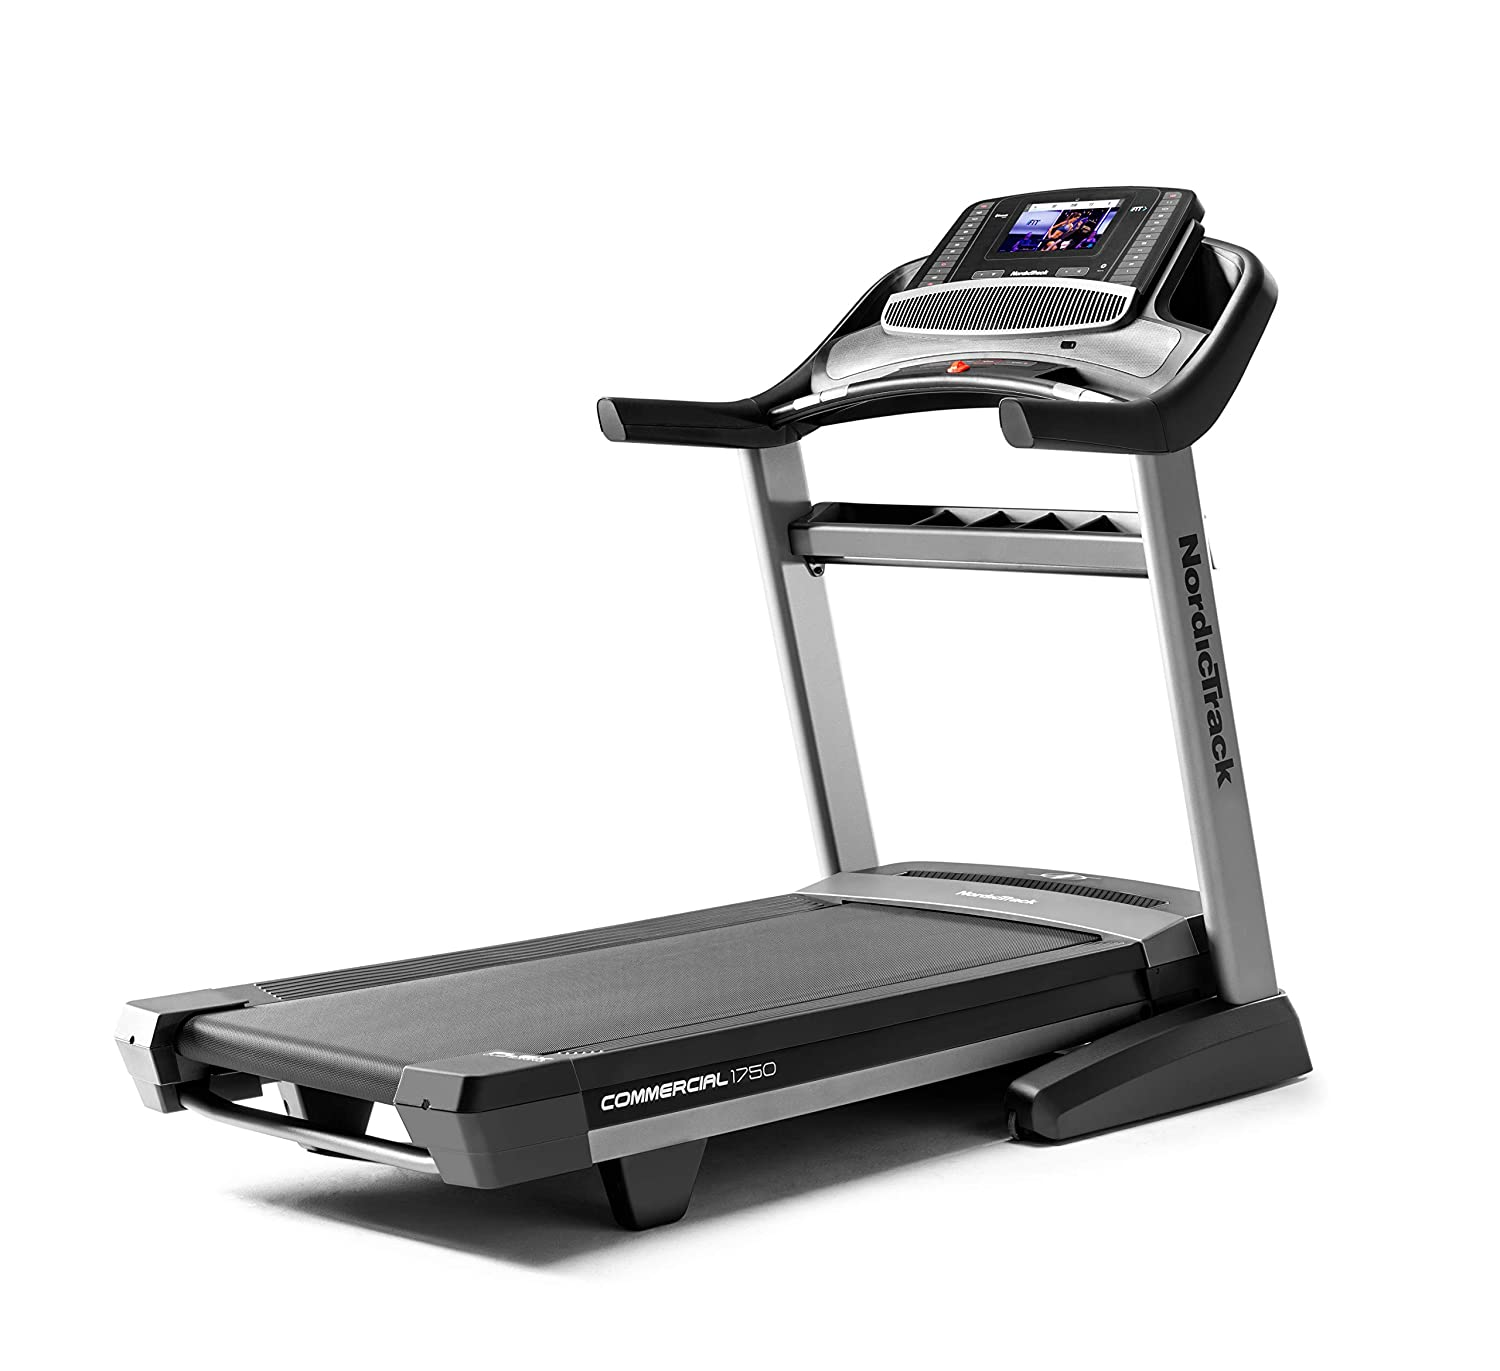 NordicTrack Commercial Treadmill Series with 1 Year iFit Subscription (1750  and 2950 Models)